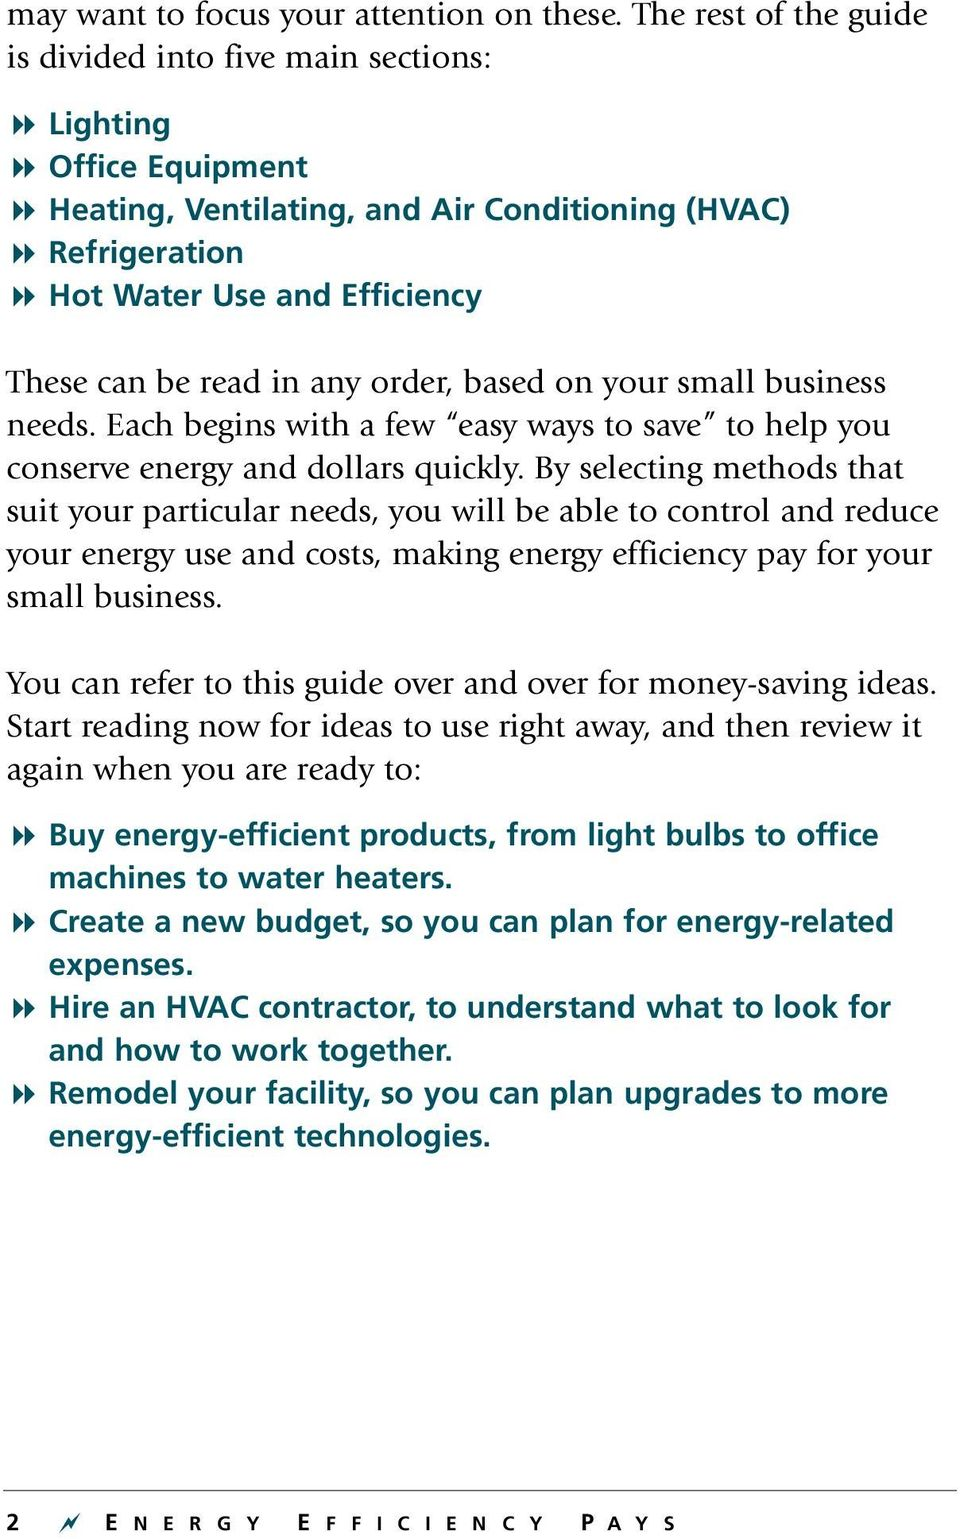 read in any order, based on your small business needs. Each begins with a few easy ways to save to help you conserve energy and dollars quickly.